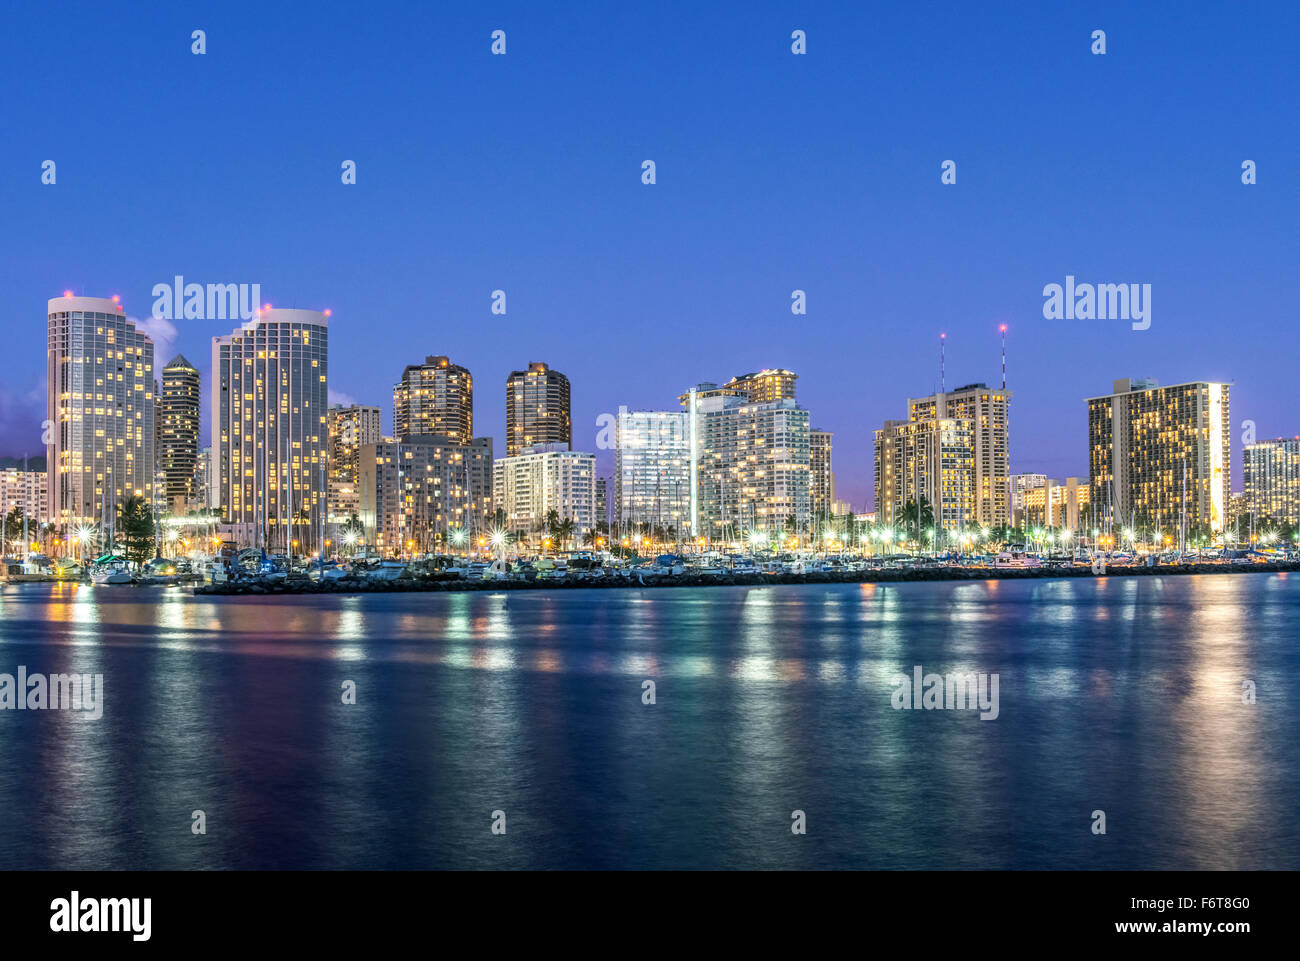 Honolulu city skyline reflection in ocean, Hawaii, United States - Stock Image